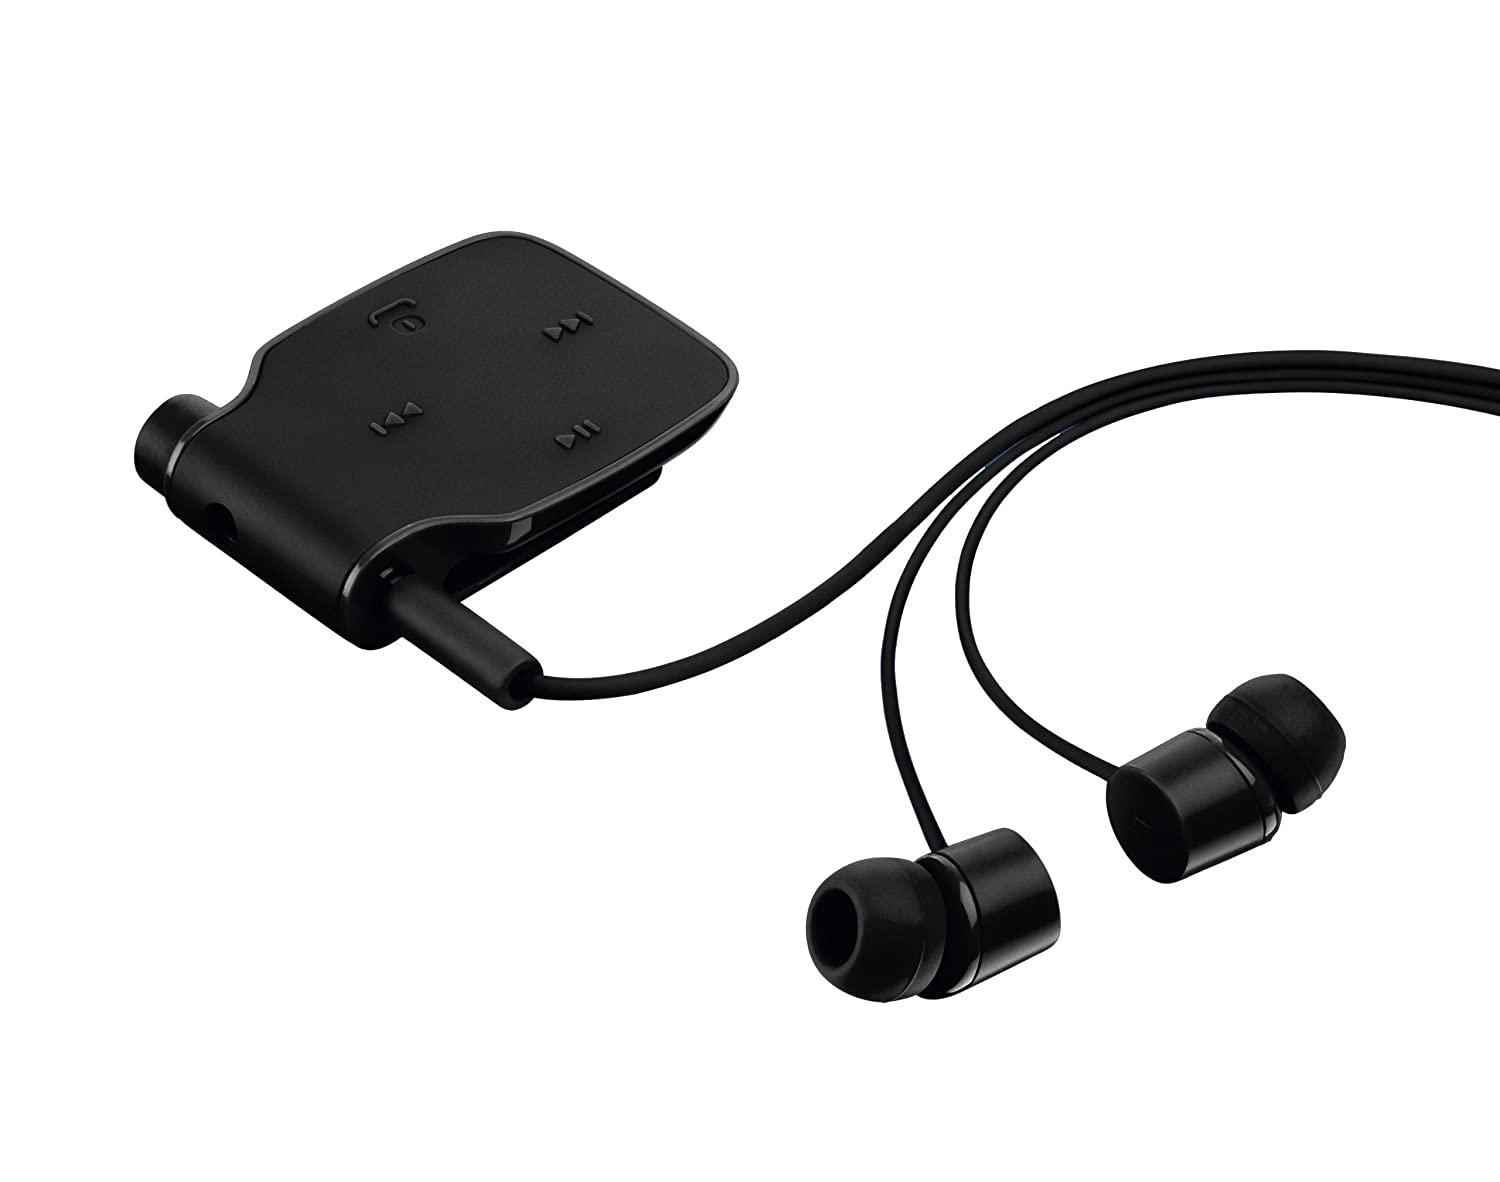 Nokia Bh 111 Bluetooth Stereo Headset Amazon In Electronics